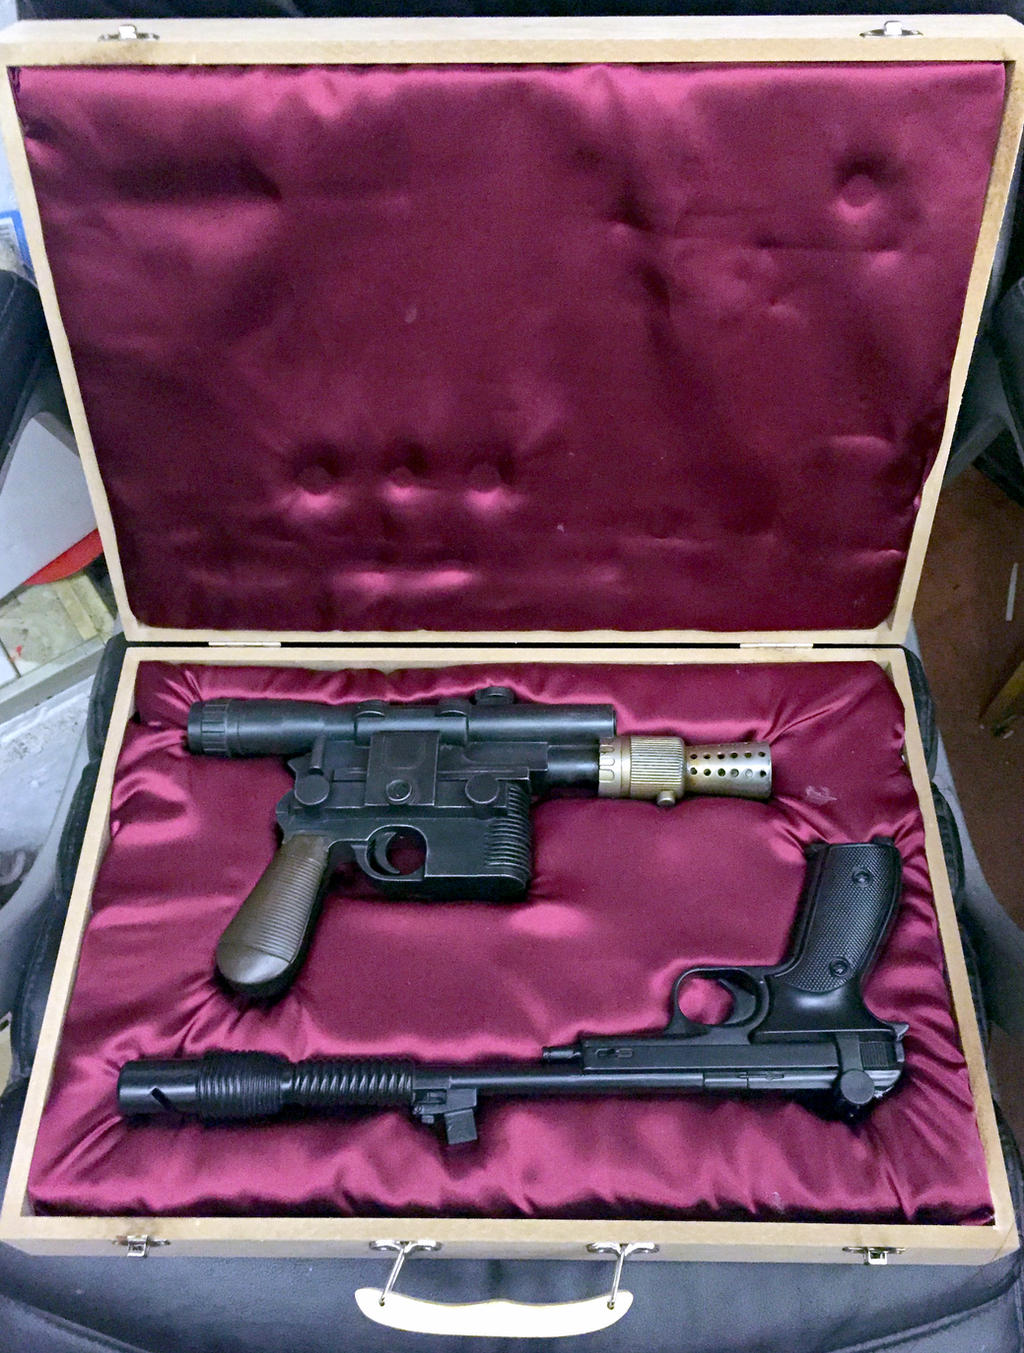 Han and Leia blaster set - Star Wars prop by DrMonkeyface